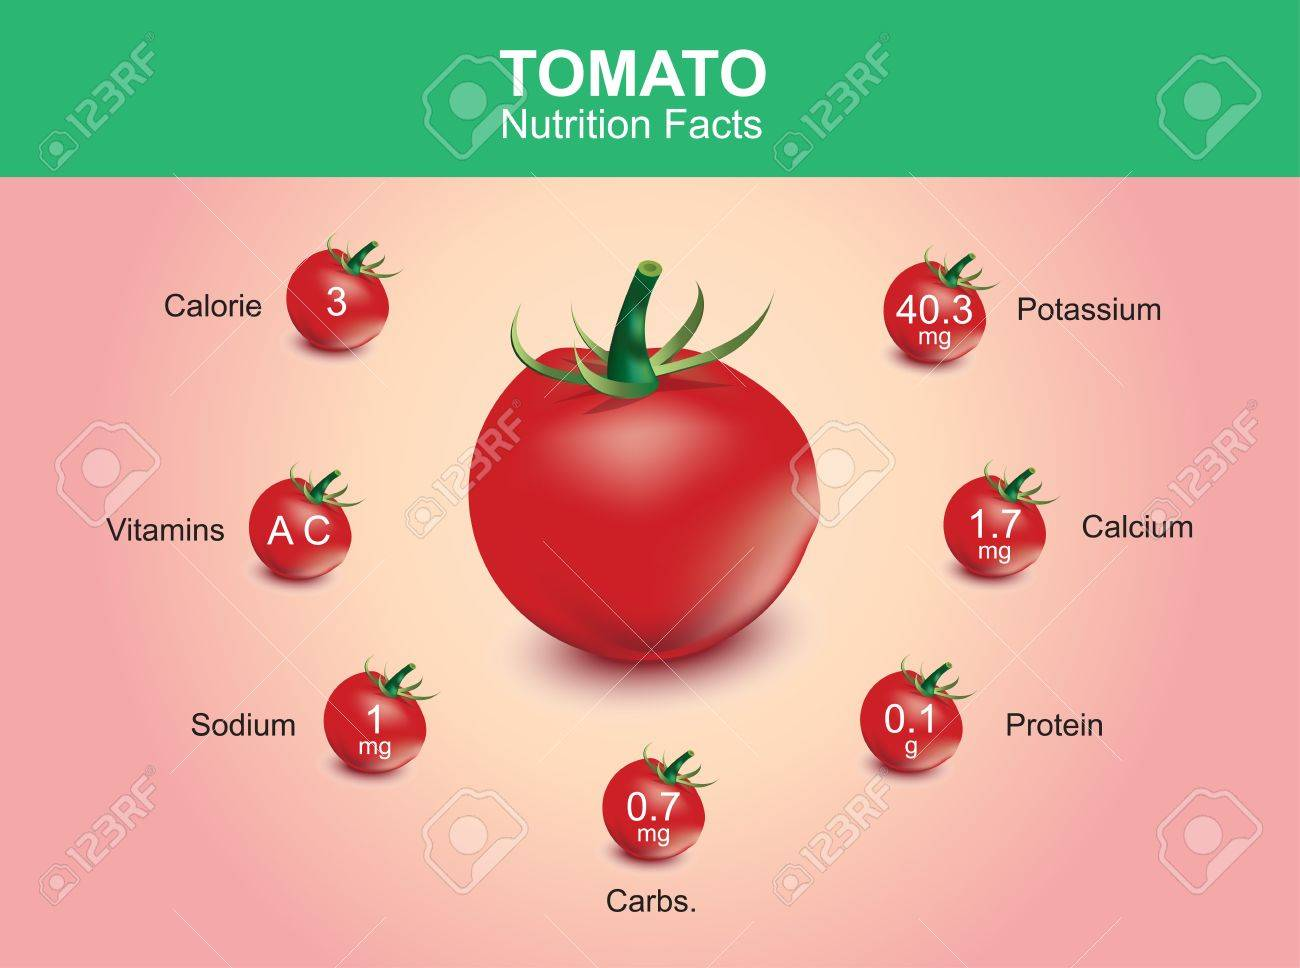 Tomato Nutrition Facts Tomato Fruit With Information Tomato Vector Royalty Free Cliparts Vectors And Stock Illustration Image 40968562